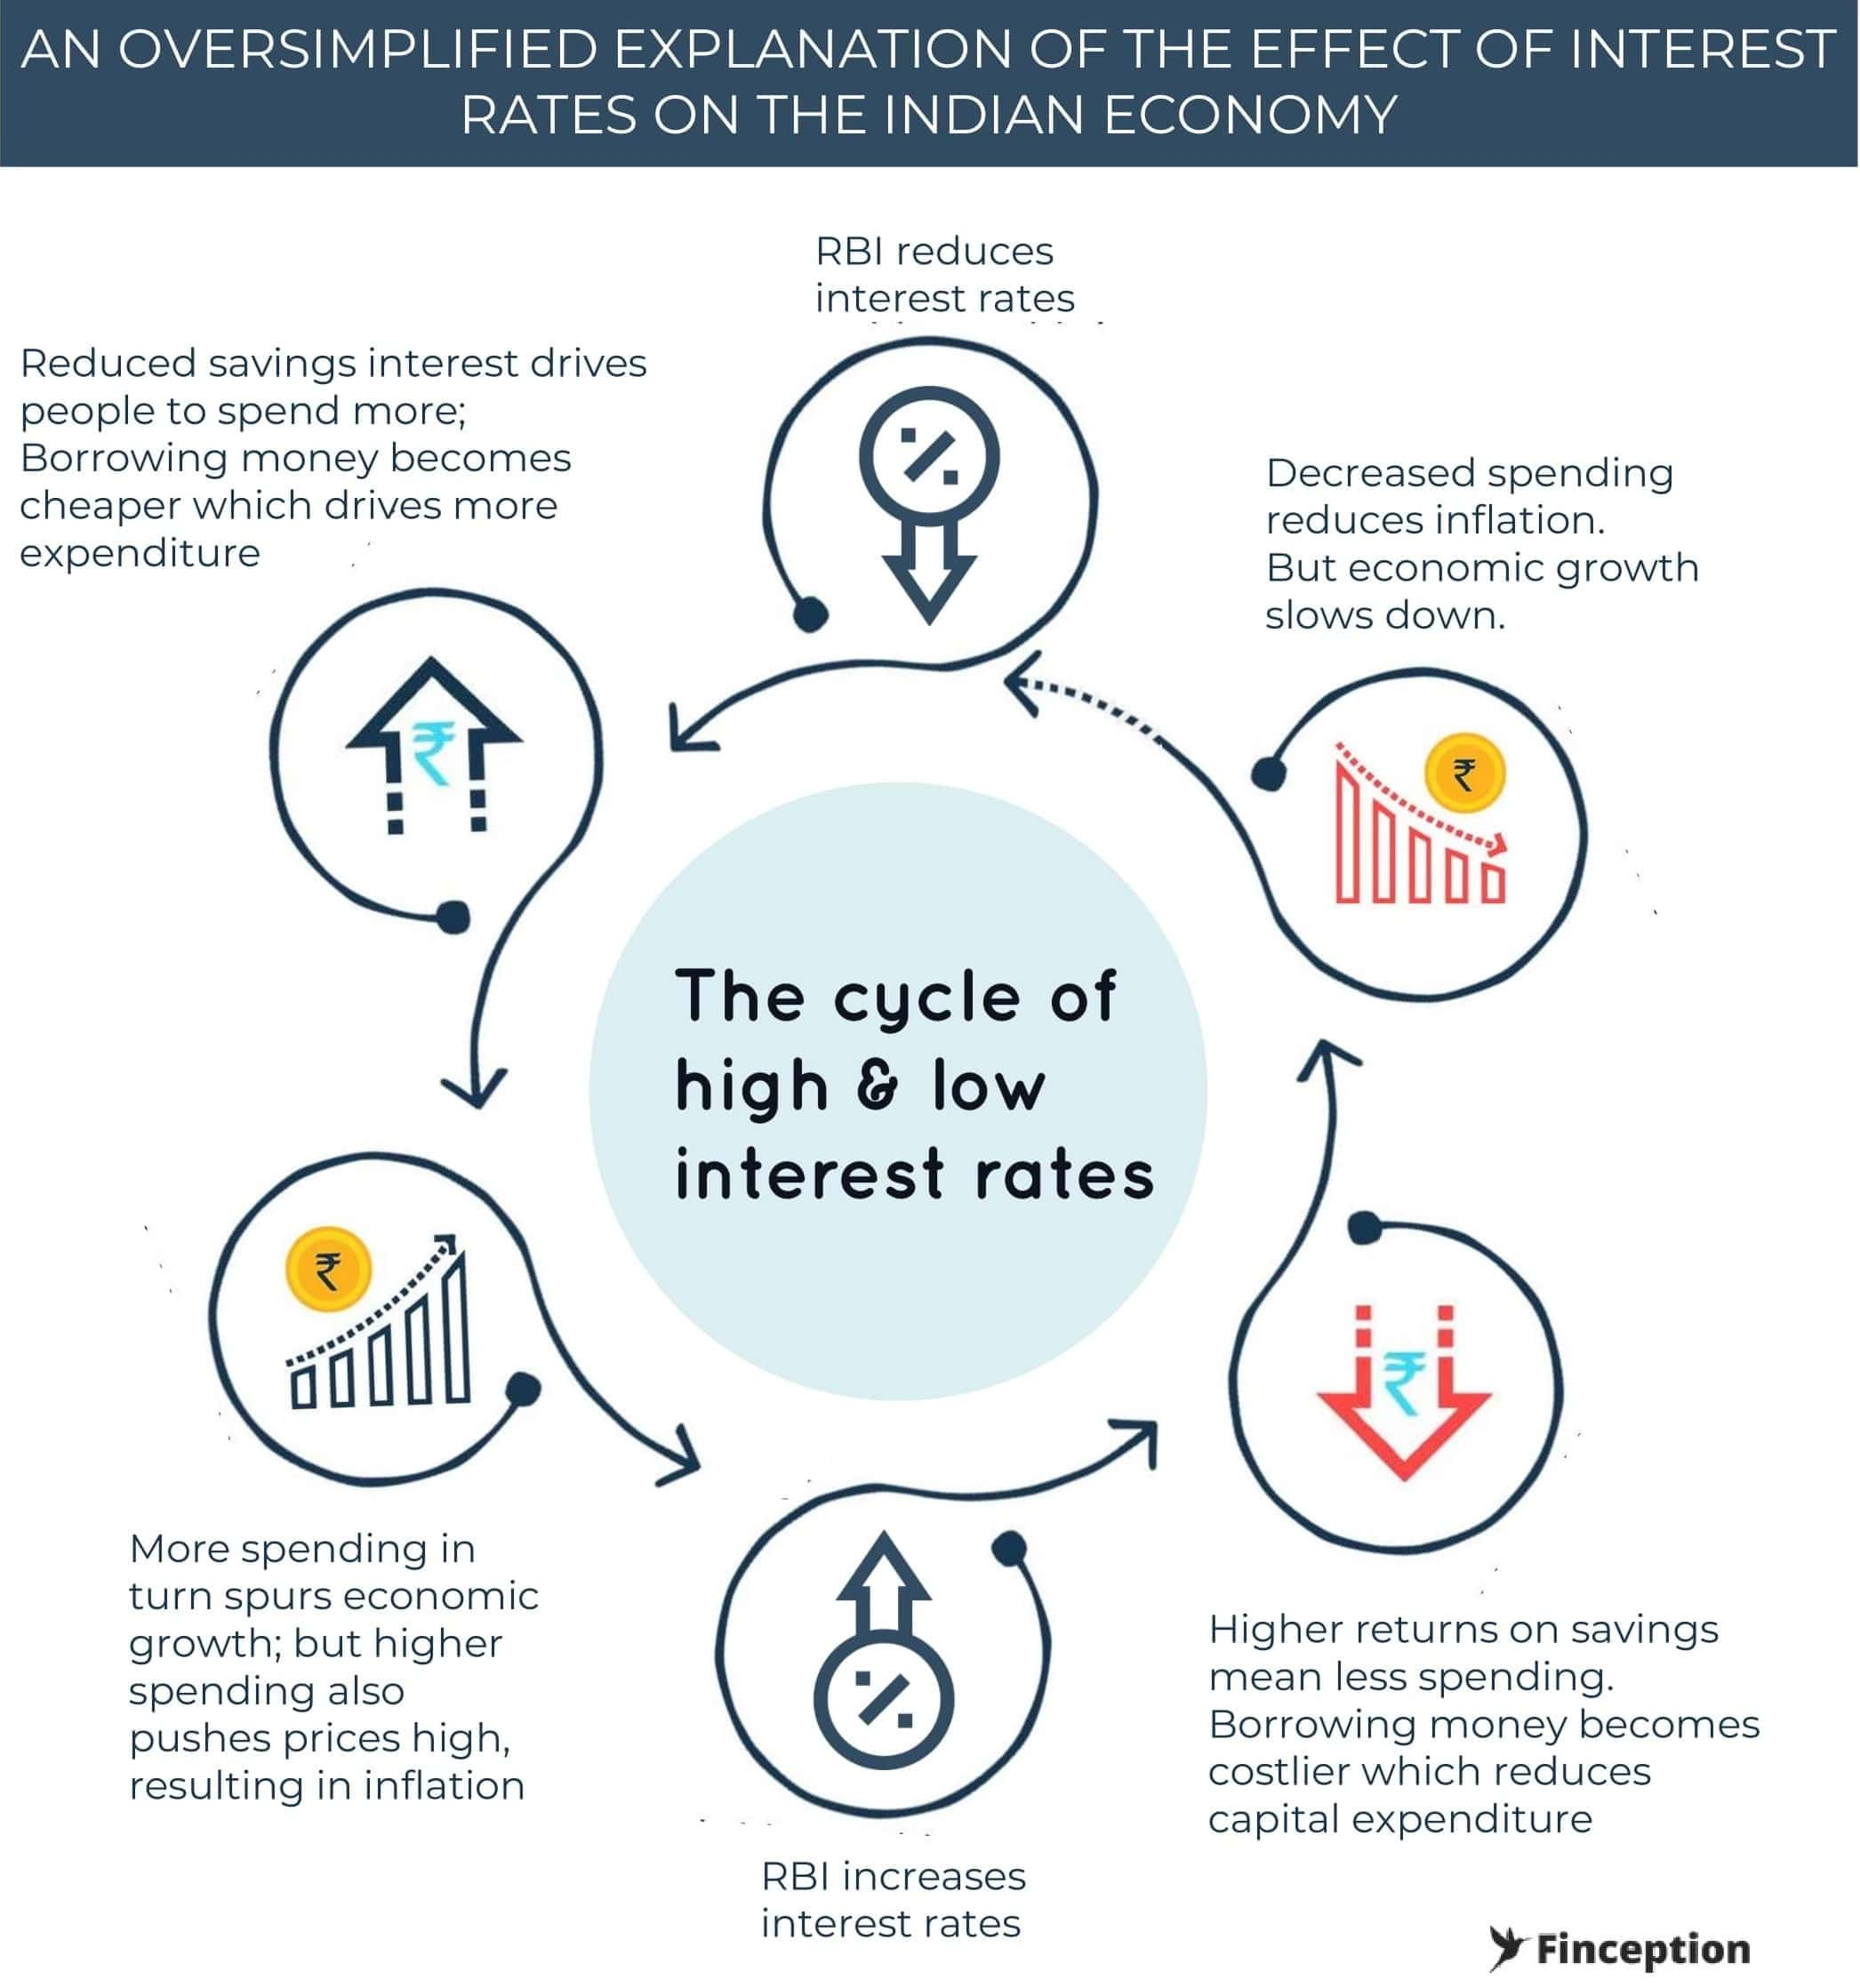 Over simplified interest rate cycles in Indian Economy